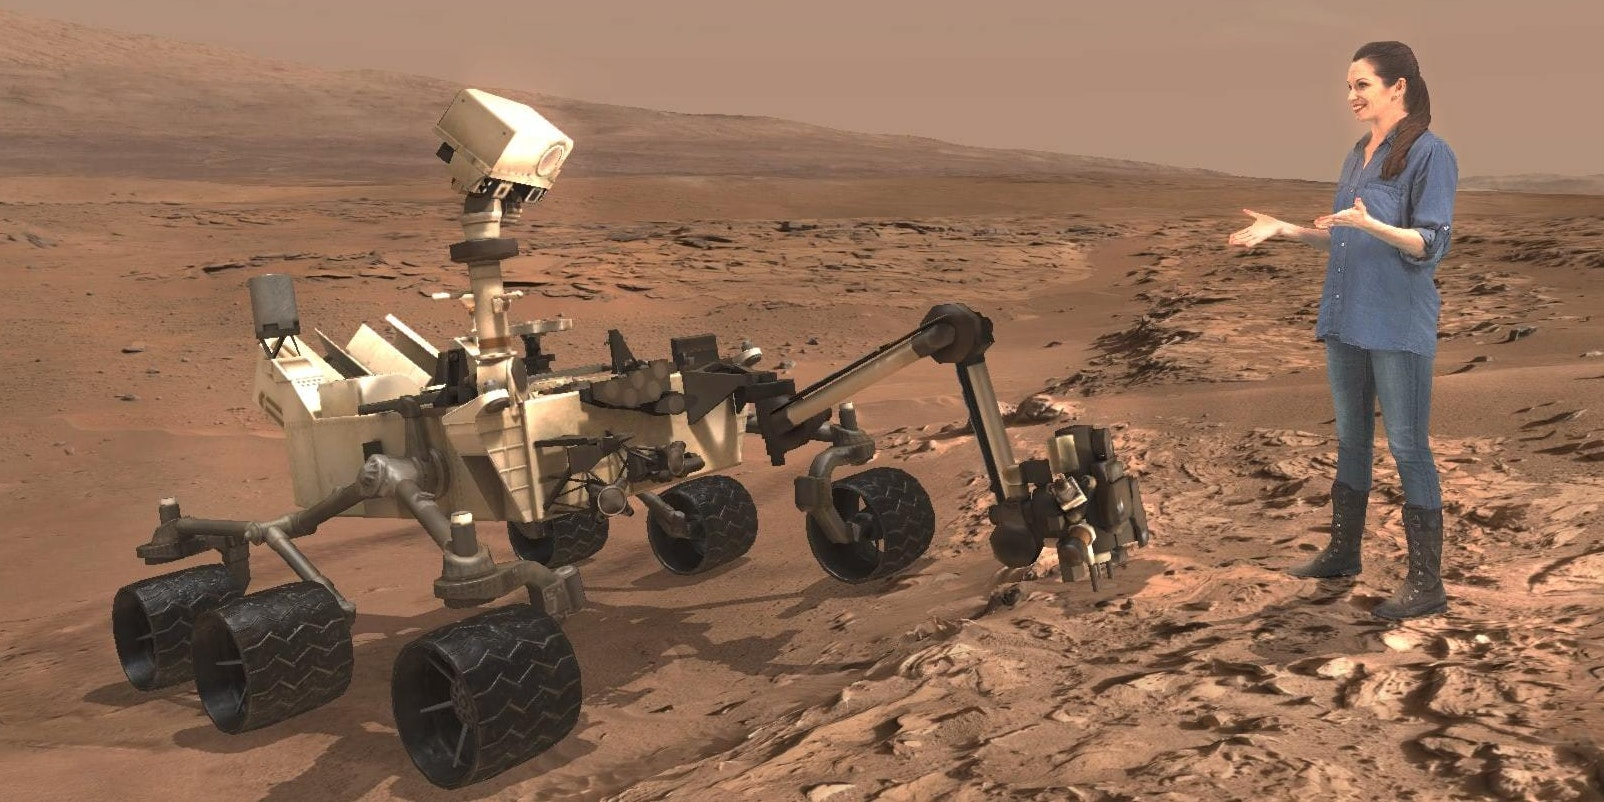 You can now explore Mars virtually with Buzz Aldrin as your guide.